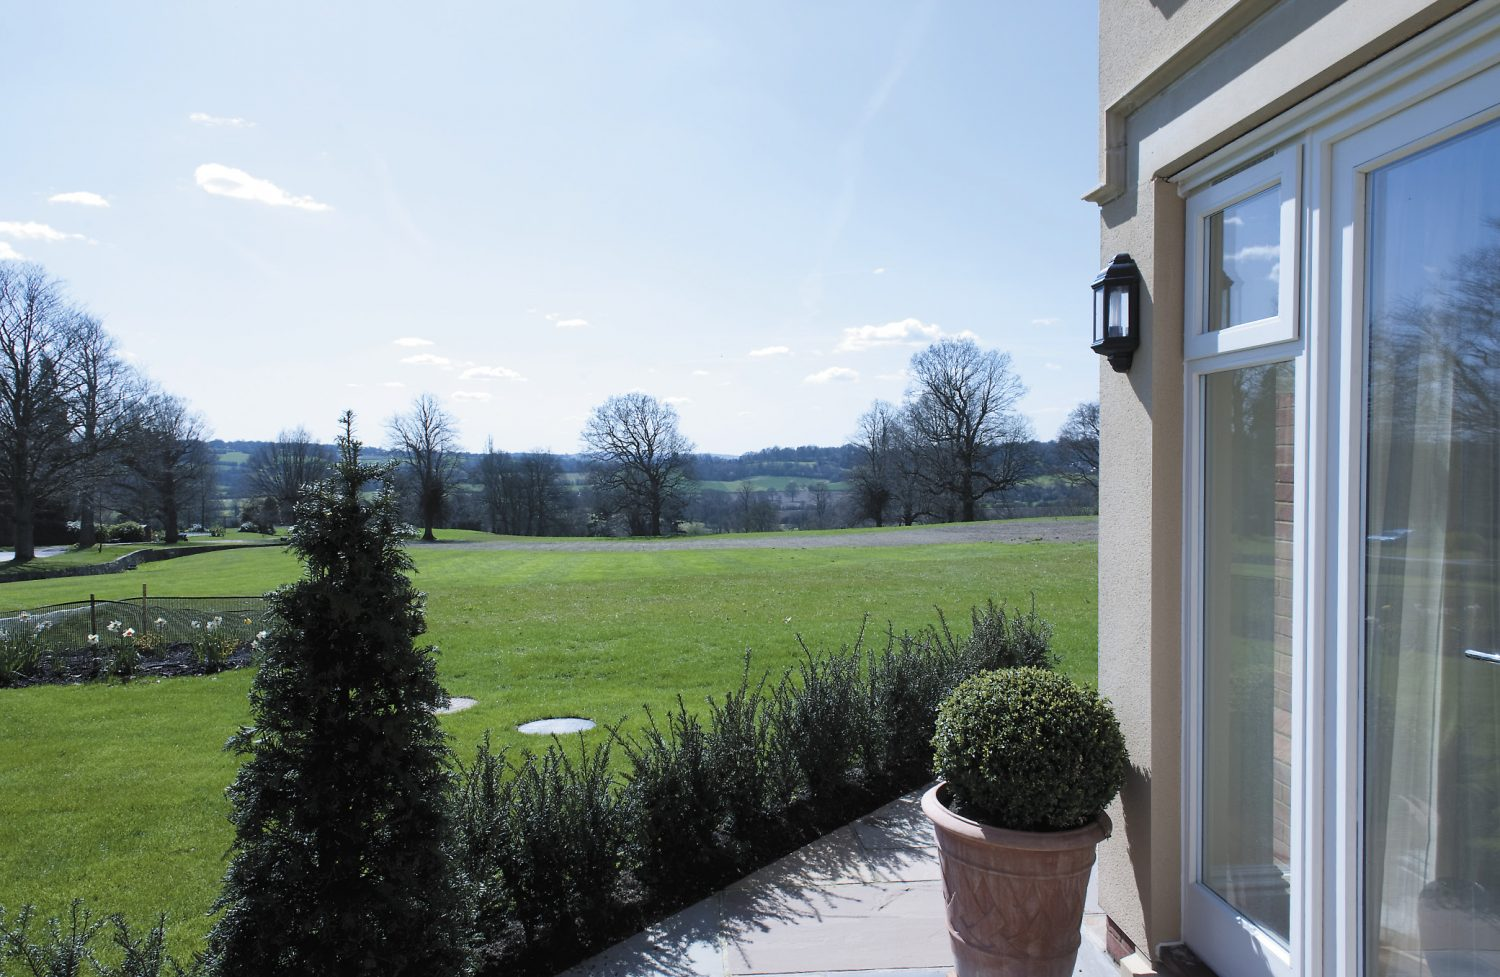 """The apartment enjoys wonderful views across the parkland. """"We have three terraces here so we can change our perspective, or we can walk to the village pub when we have guests, visit Penshurst gardens, or just stroll around the grounds., says Jean"""